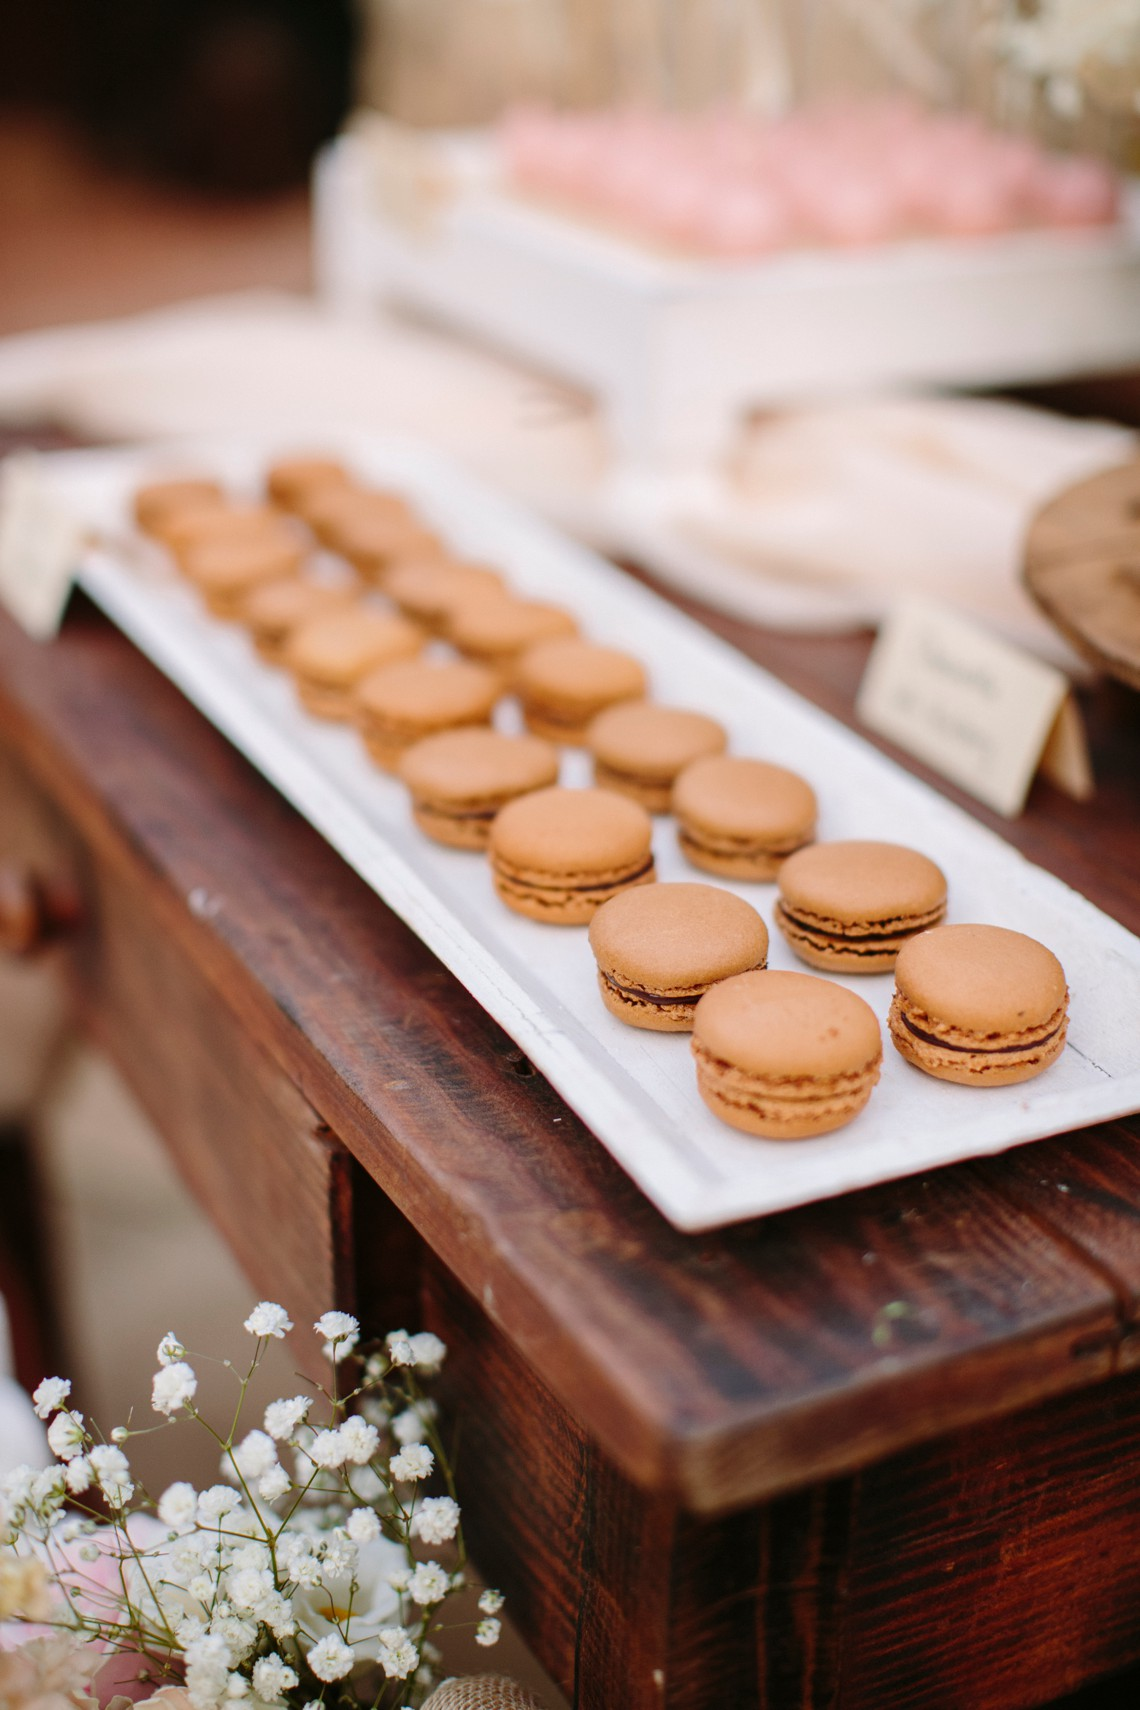 Posh Mallorca Pool Party Wedding at a Rustic Spanish Villa – Sandra Manas 46